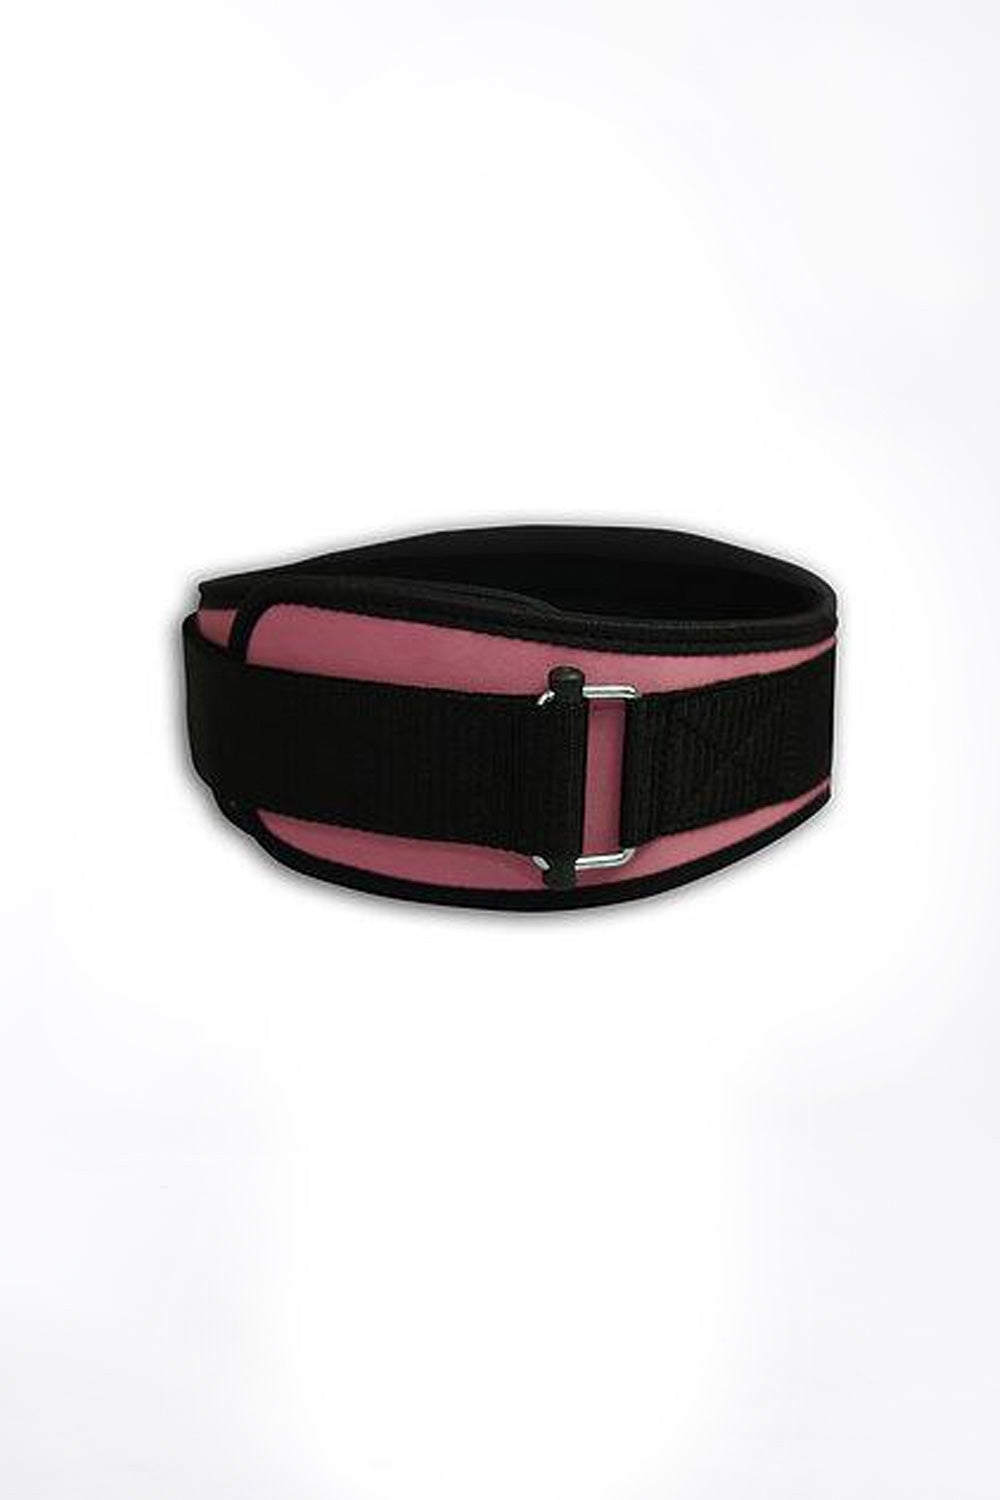 Weight Lifting Pink Belt